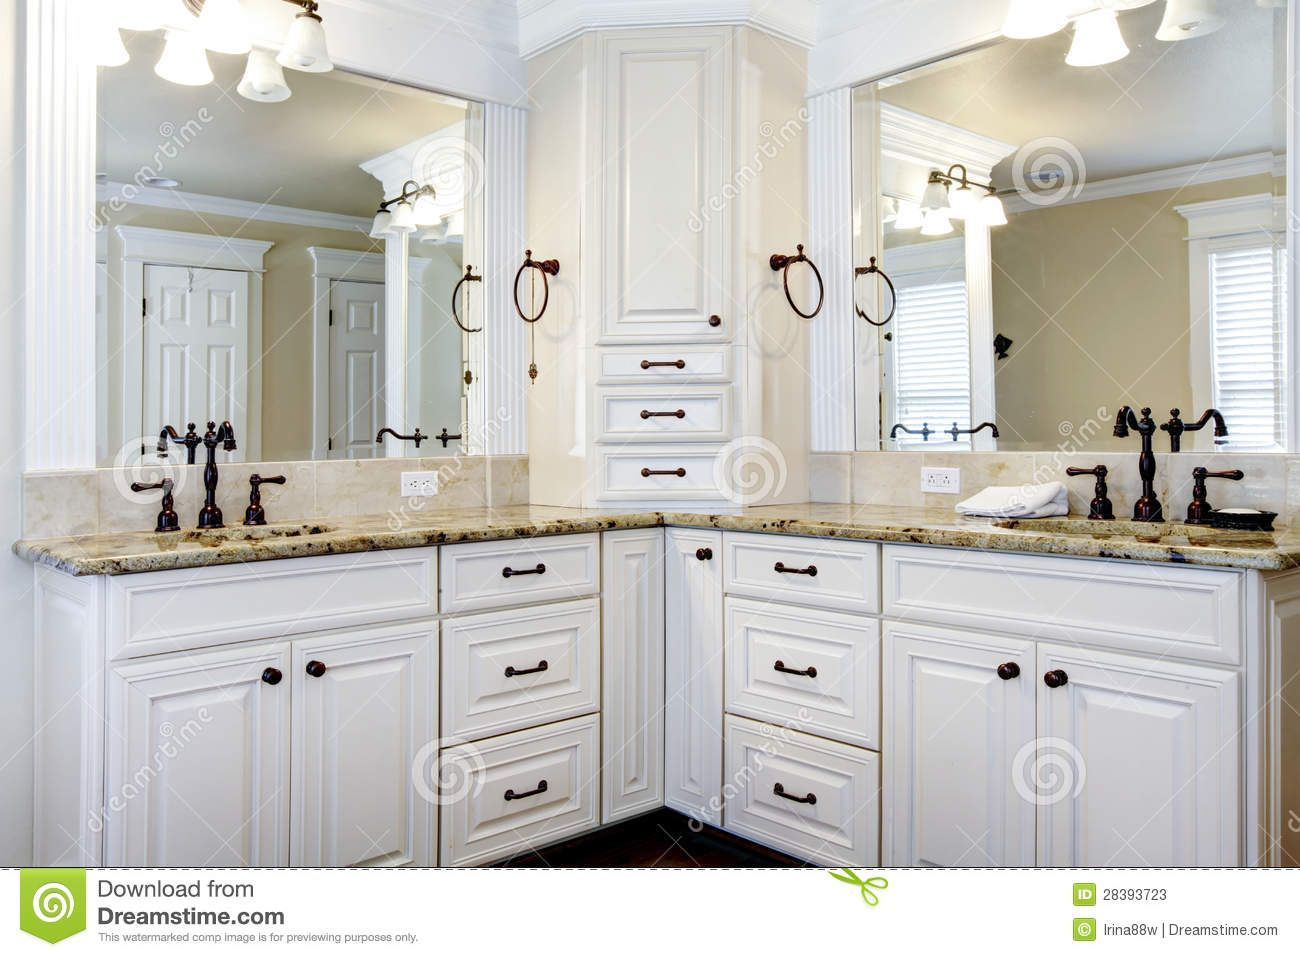 bathroom cabinets | Luxury large white master bathroom cabinets with ...